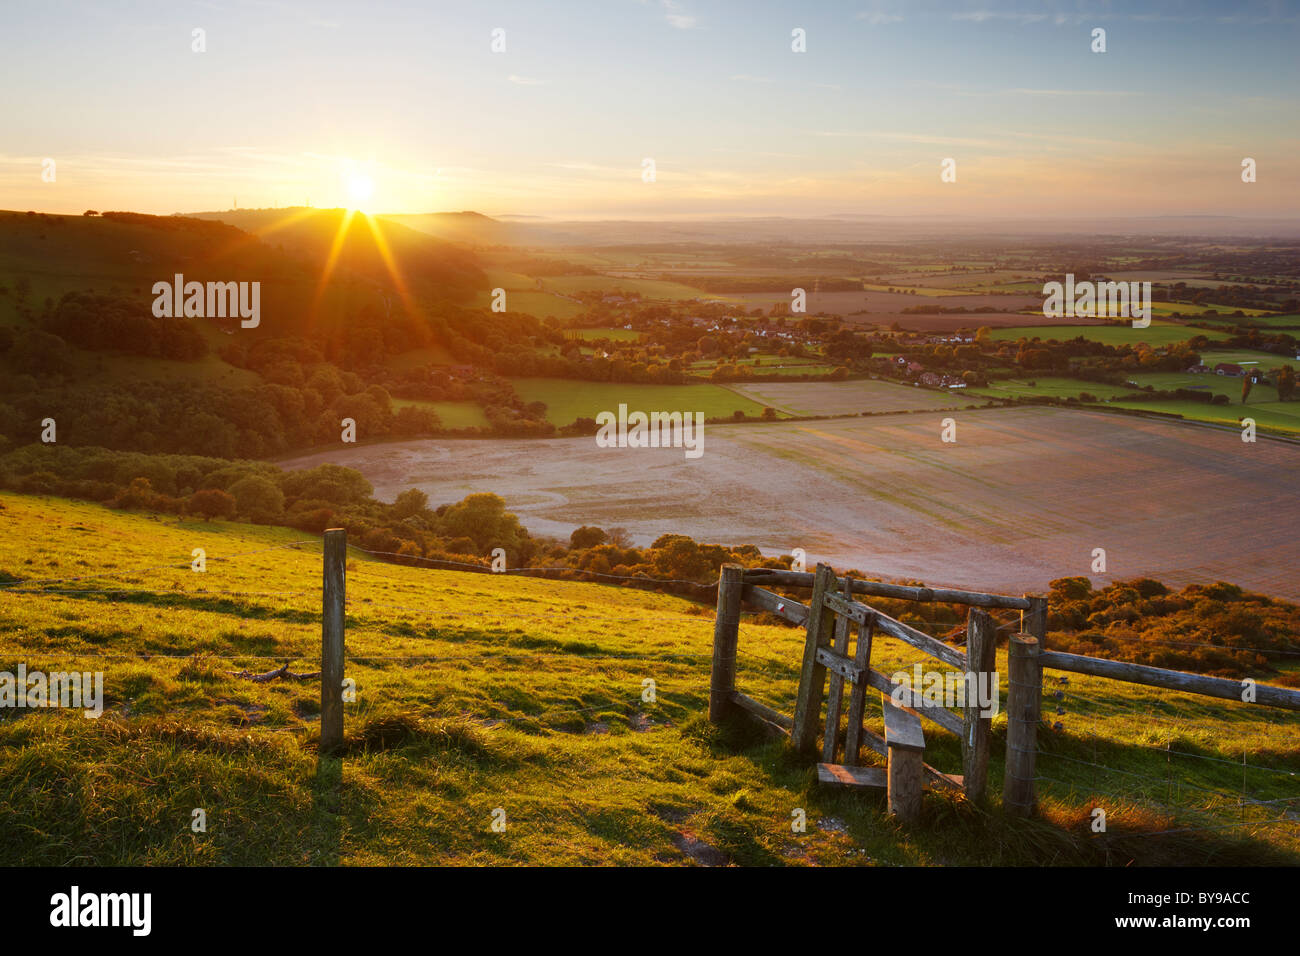 Stile with views across the West Sussex countryside. The evening sun making its descent behind the undulating Hillside. Stock Photo